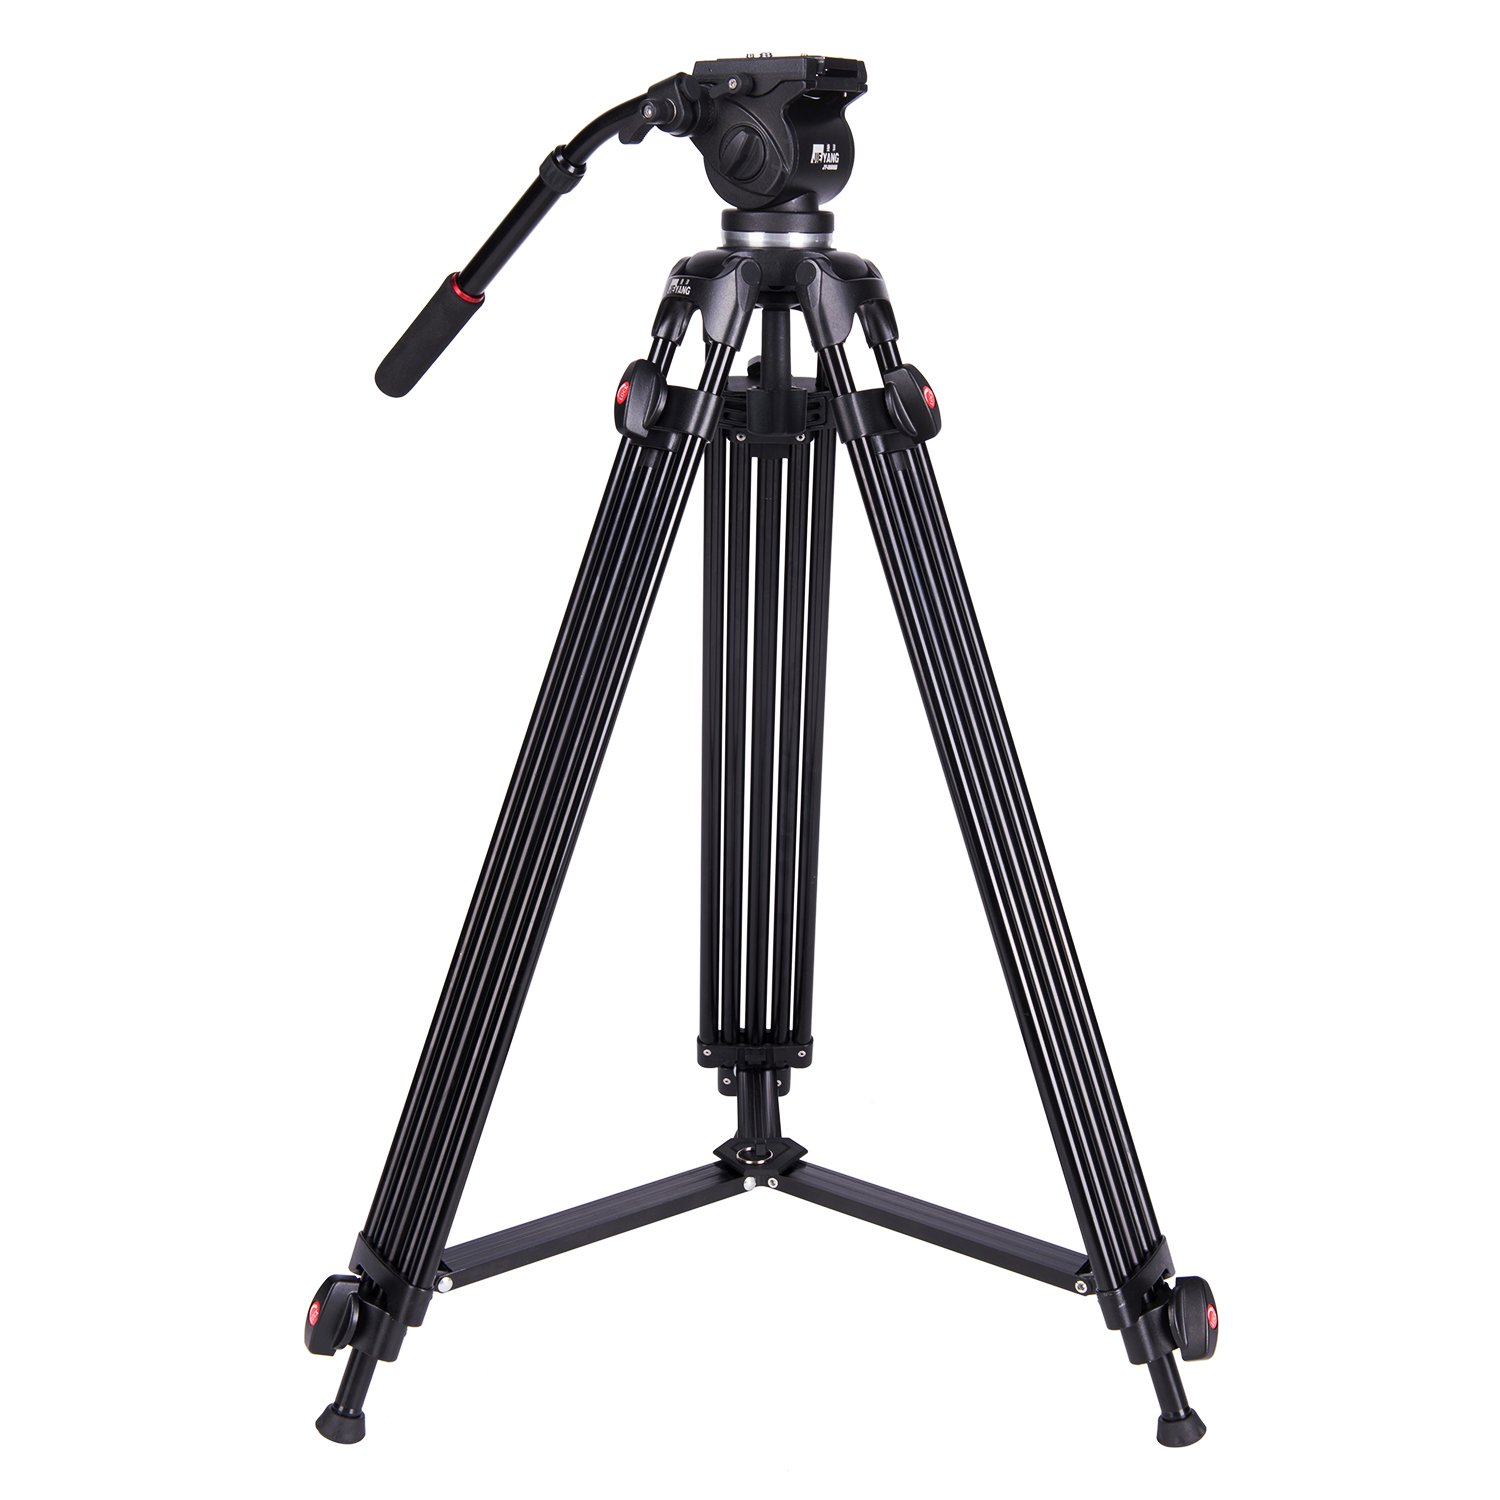 Professional Video Tripod,73 Inchs Heavy Duty Aluminum Alloy Tripod with Fluid Drag Head, 1/4″and 3/8″Quick Release Plate,Max Loading 7KG,with Carrying Bag for Video Camera Camcorder by JIEN YANNG